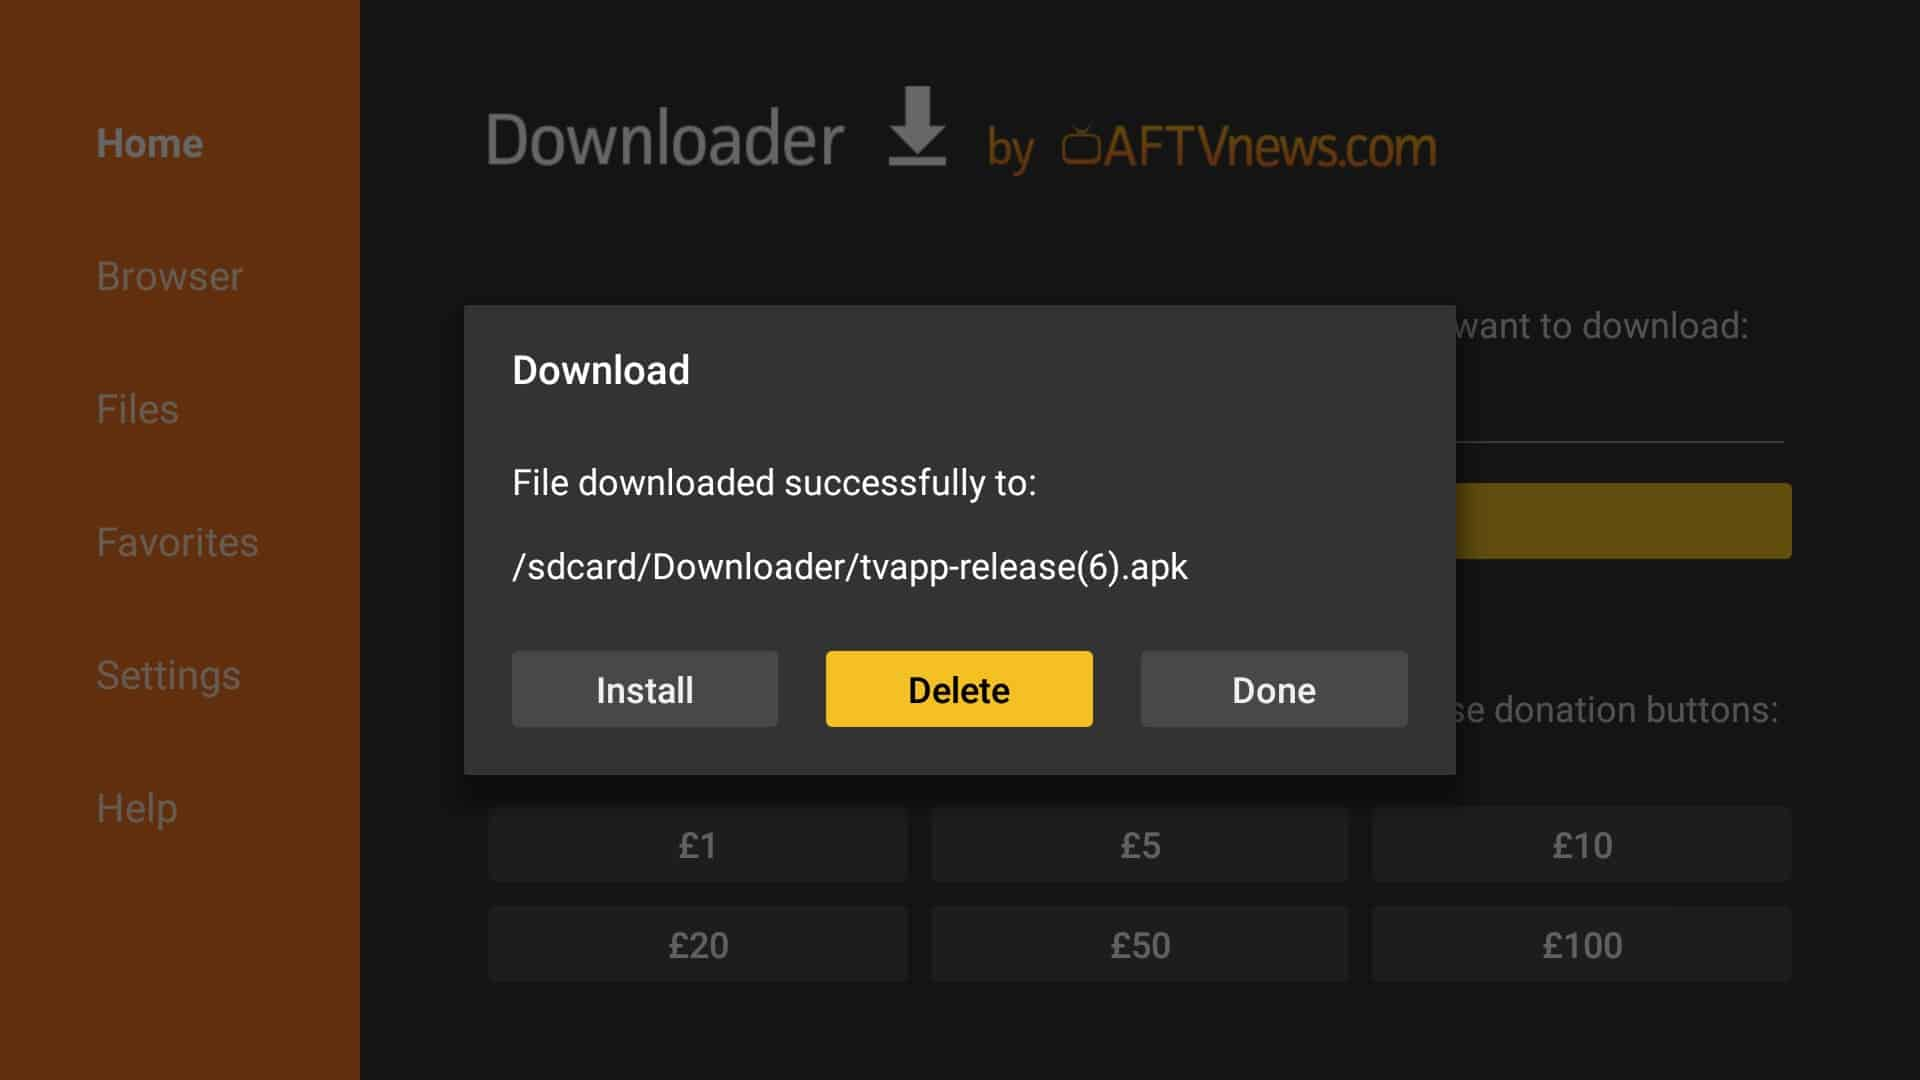 After downloading finish, click Install